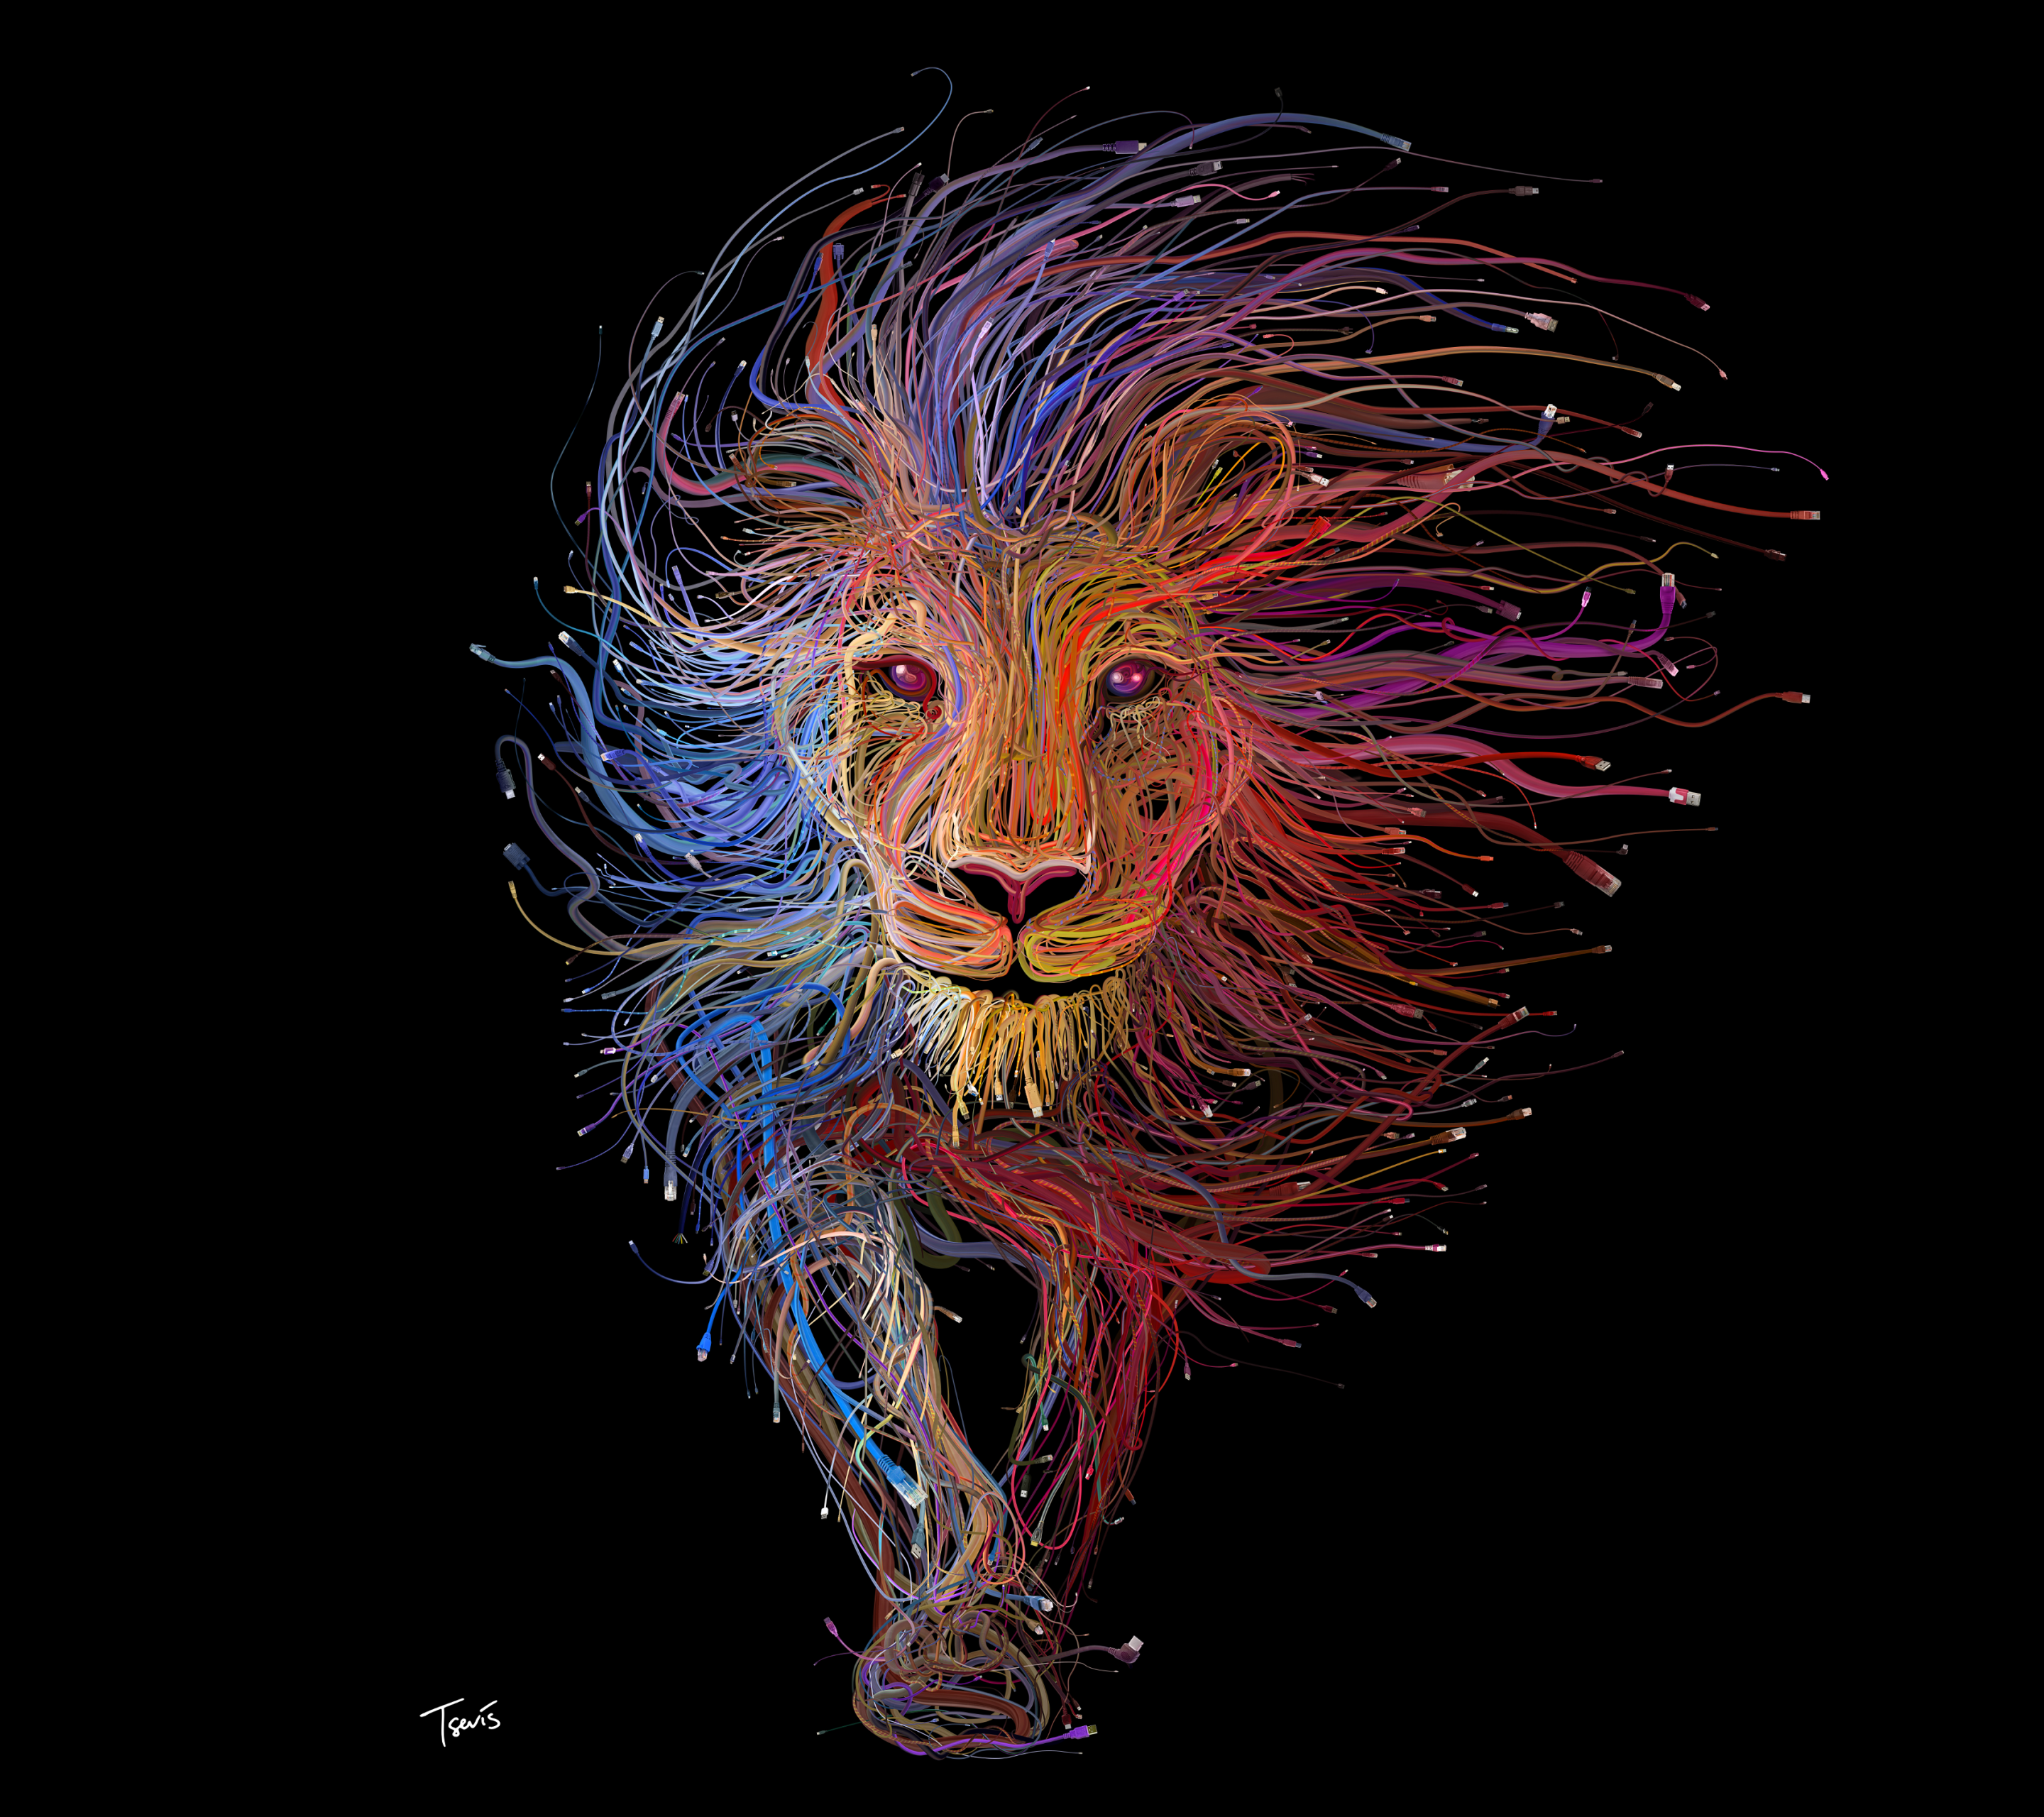 2880x2560 Fantasy/Lion (2880x2560) Wallpaper ID: 627918 - Mobile Abyss